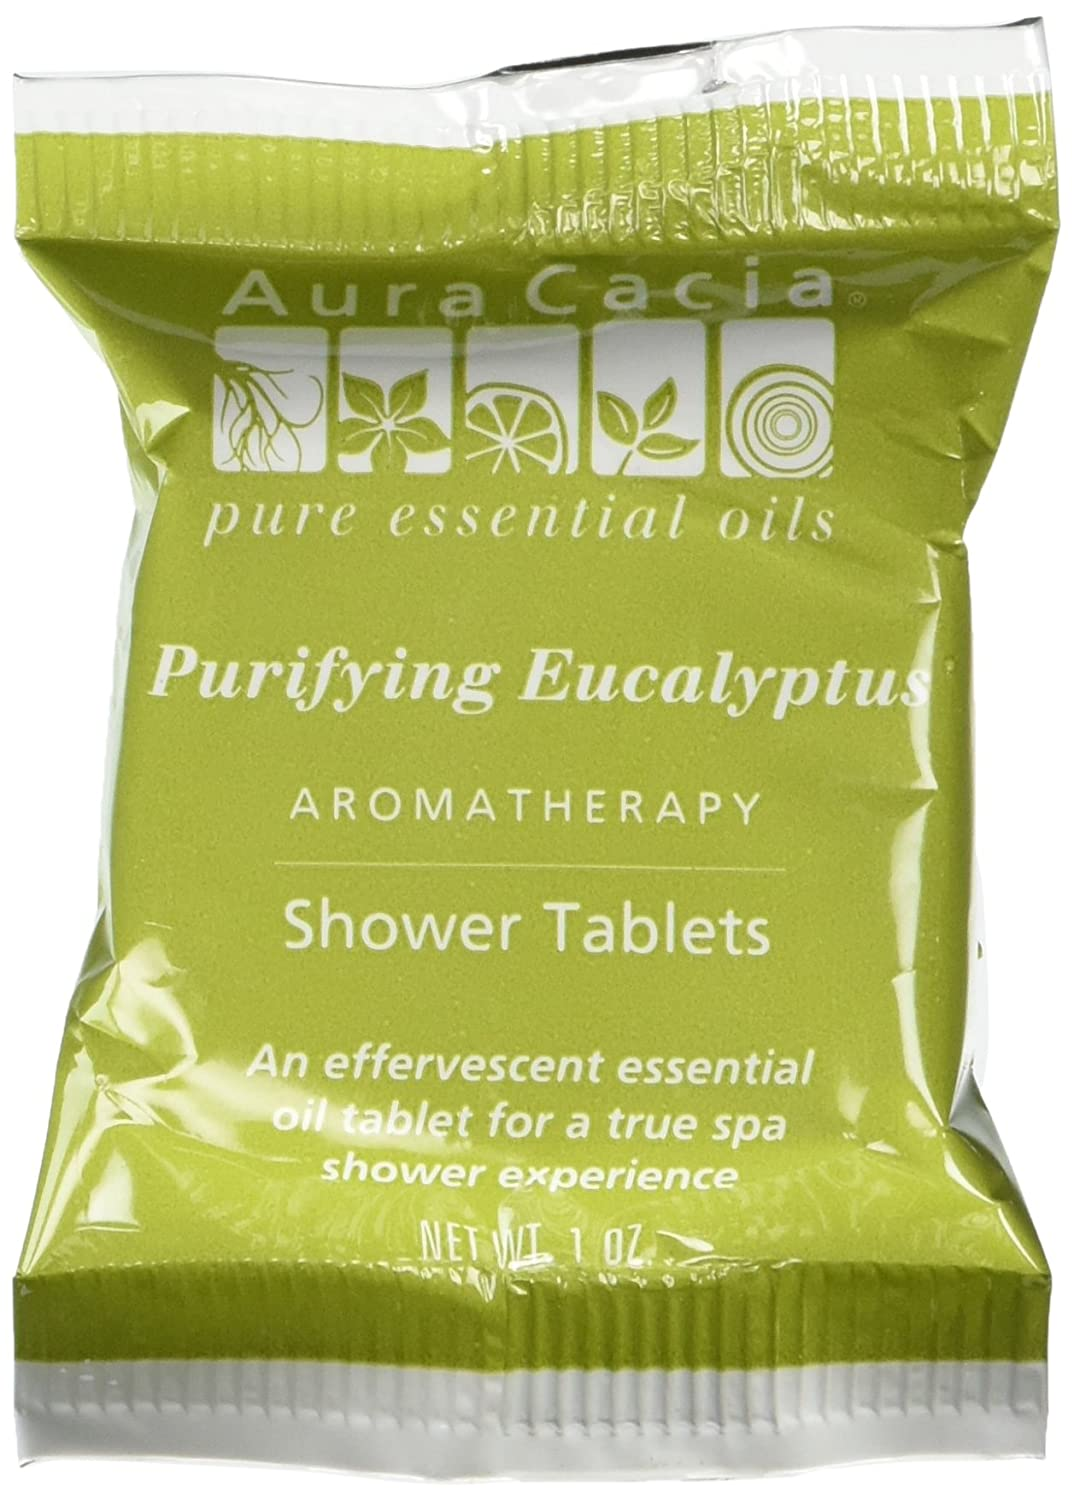 Aromatherapy Shower Tablets by Aura Cacia - 3 pack, Purifying Eucalyptus 51381882662